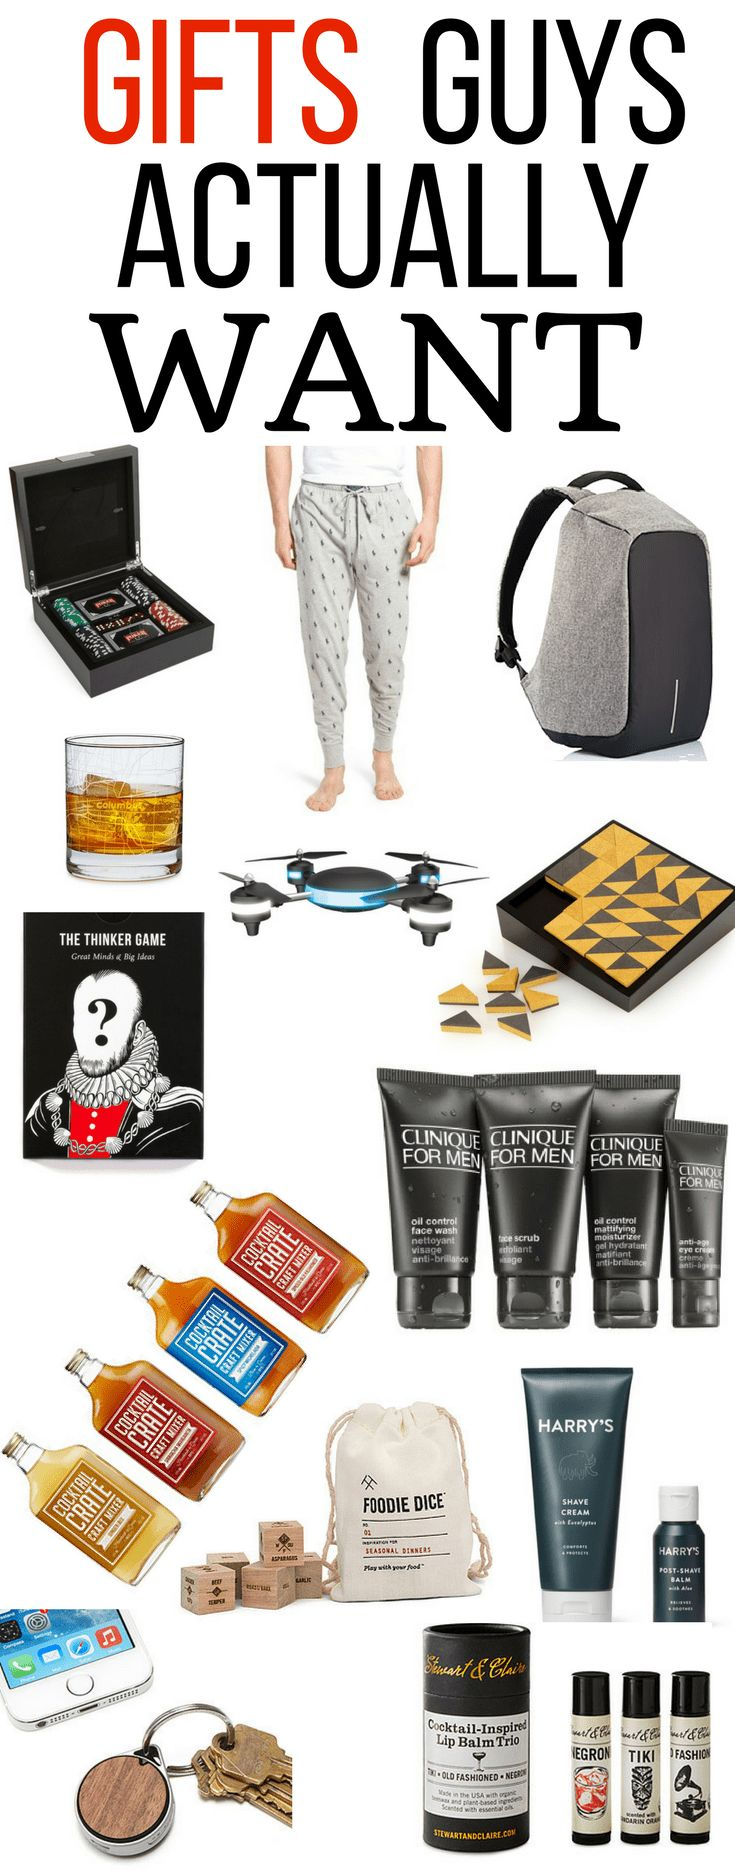 Christmas Gift Ideas For Husband: 25+ Unique Christmas Gifts For Husband Ideas On Pinterest